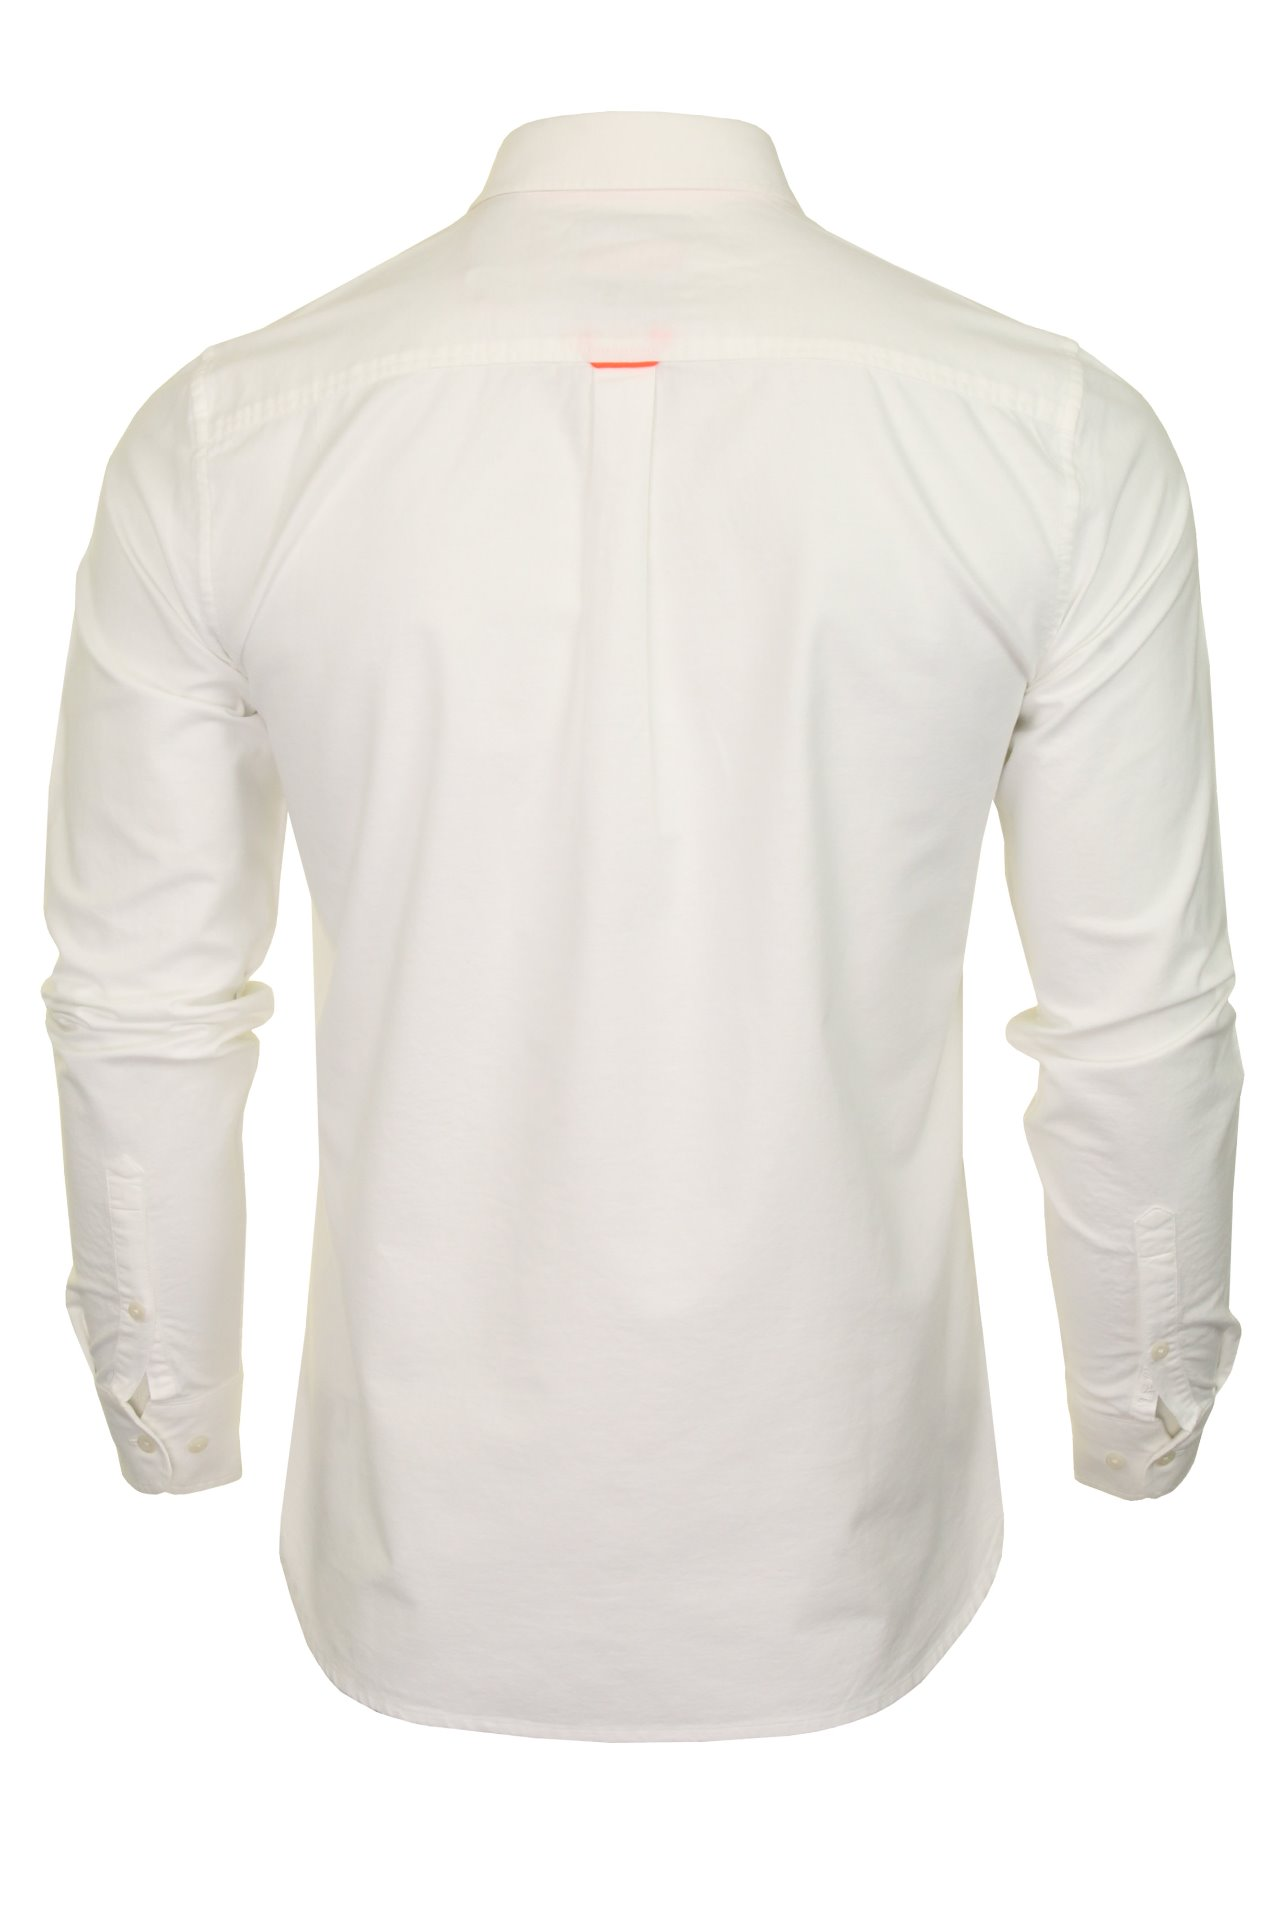 Superdry-Mens-Shirt-039-Classic-Oxford-University-039-Long-Sleeved thumbnail 8